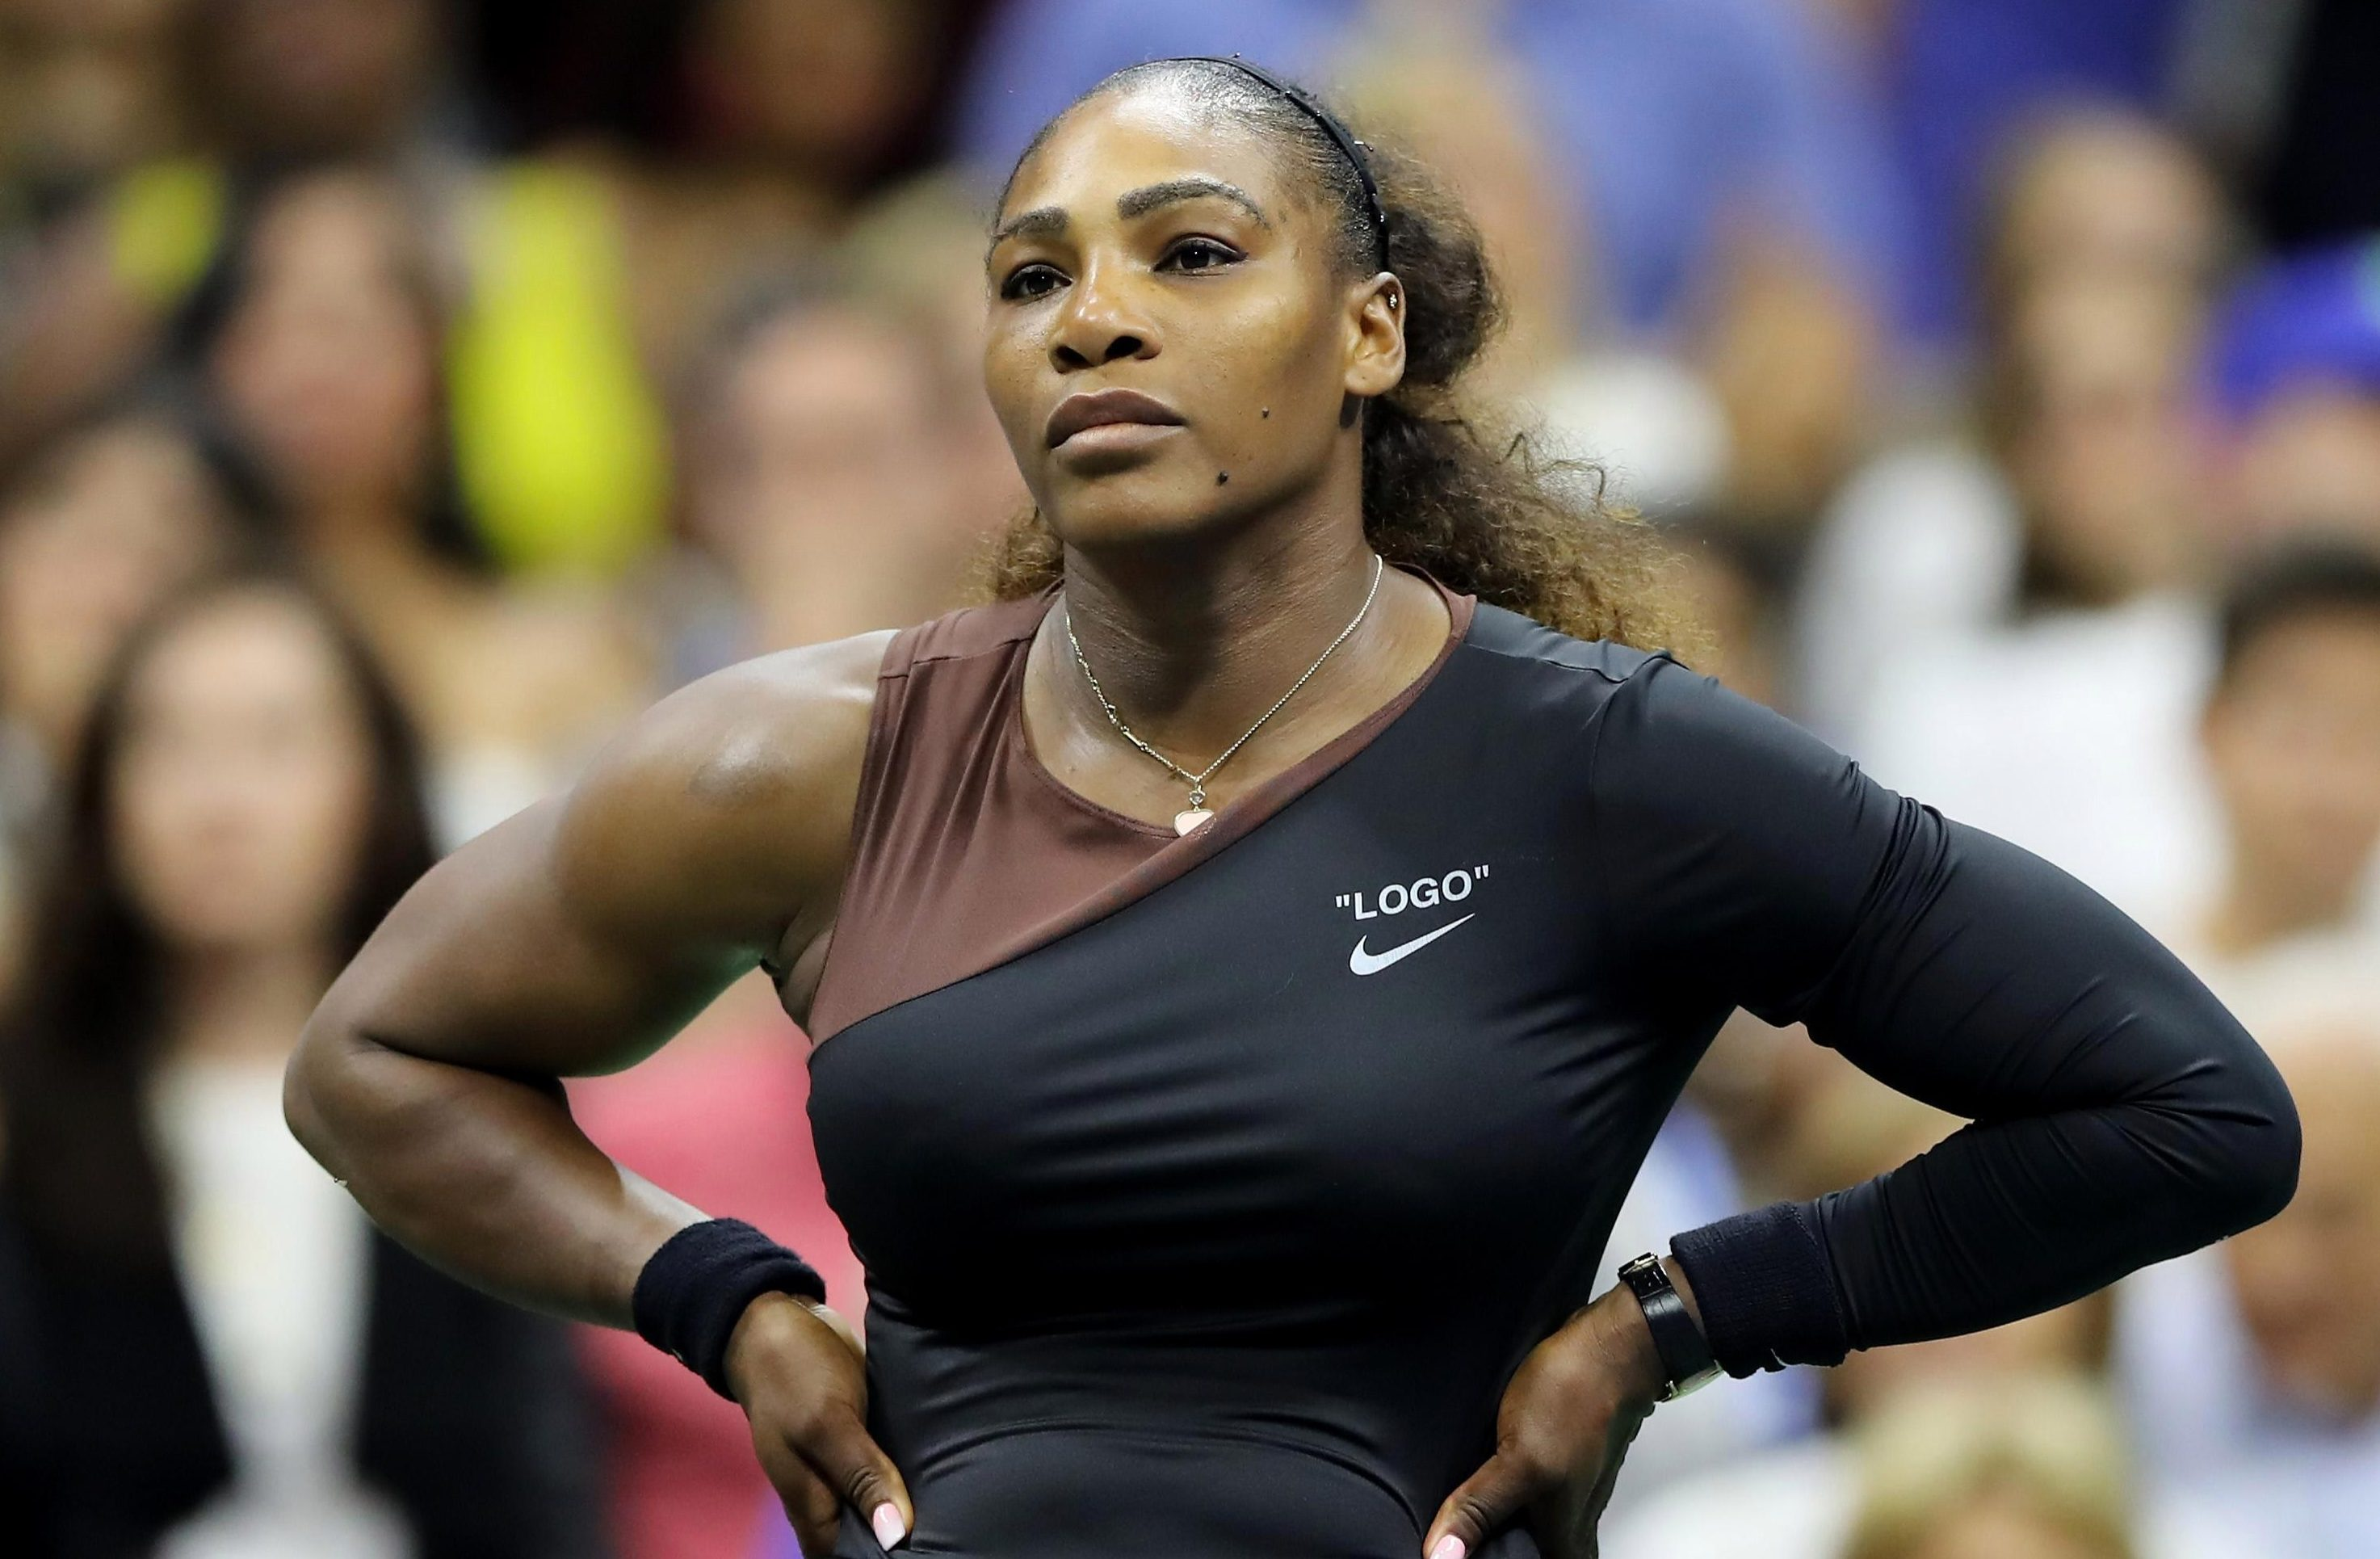 """Williams has no plans to retire from Tennis anytime soon as she wants to win """"more Grand Slams"""""""